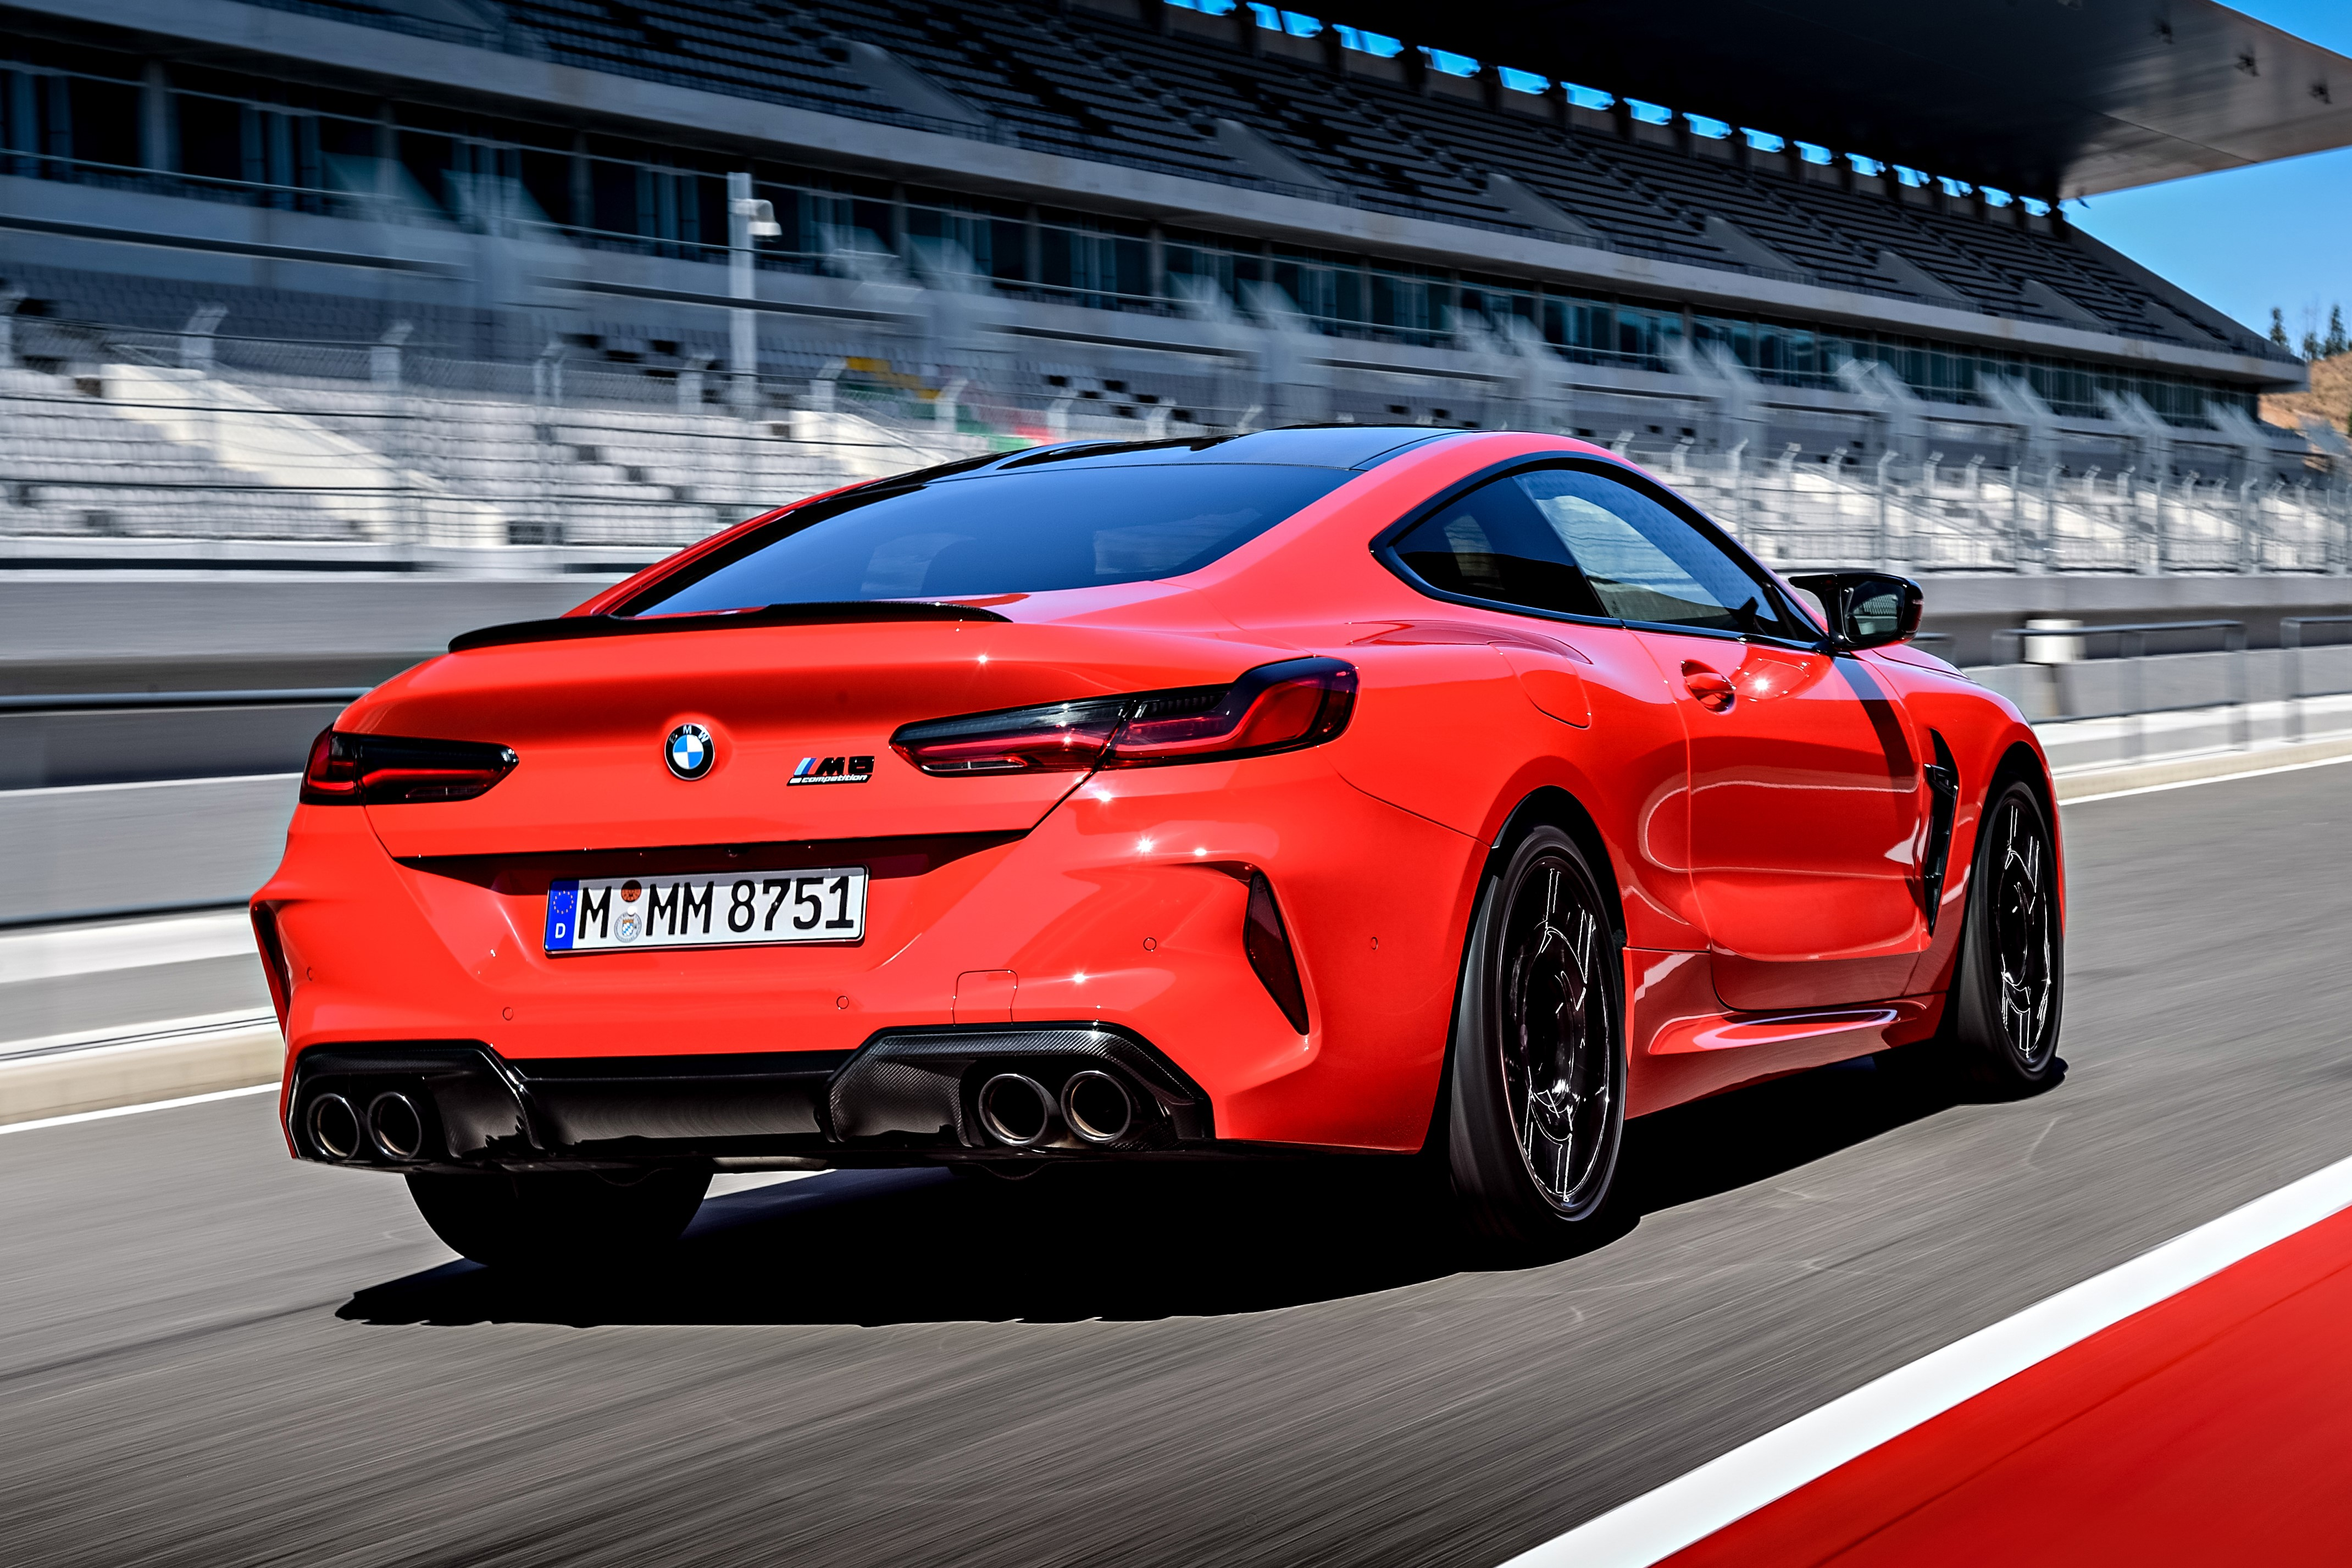 BMW M8 Competition Sprints To 100 km/h In 2.88 Seconds